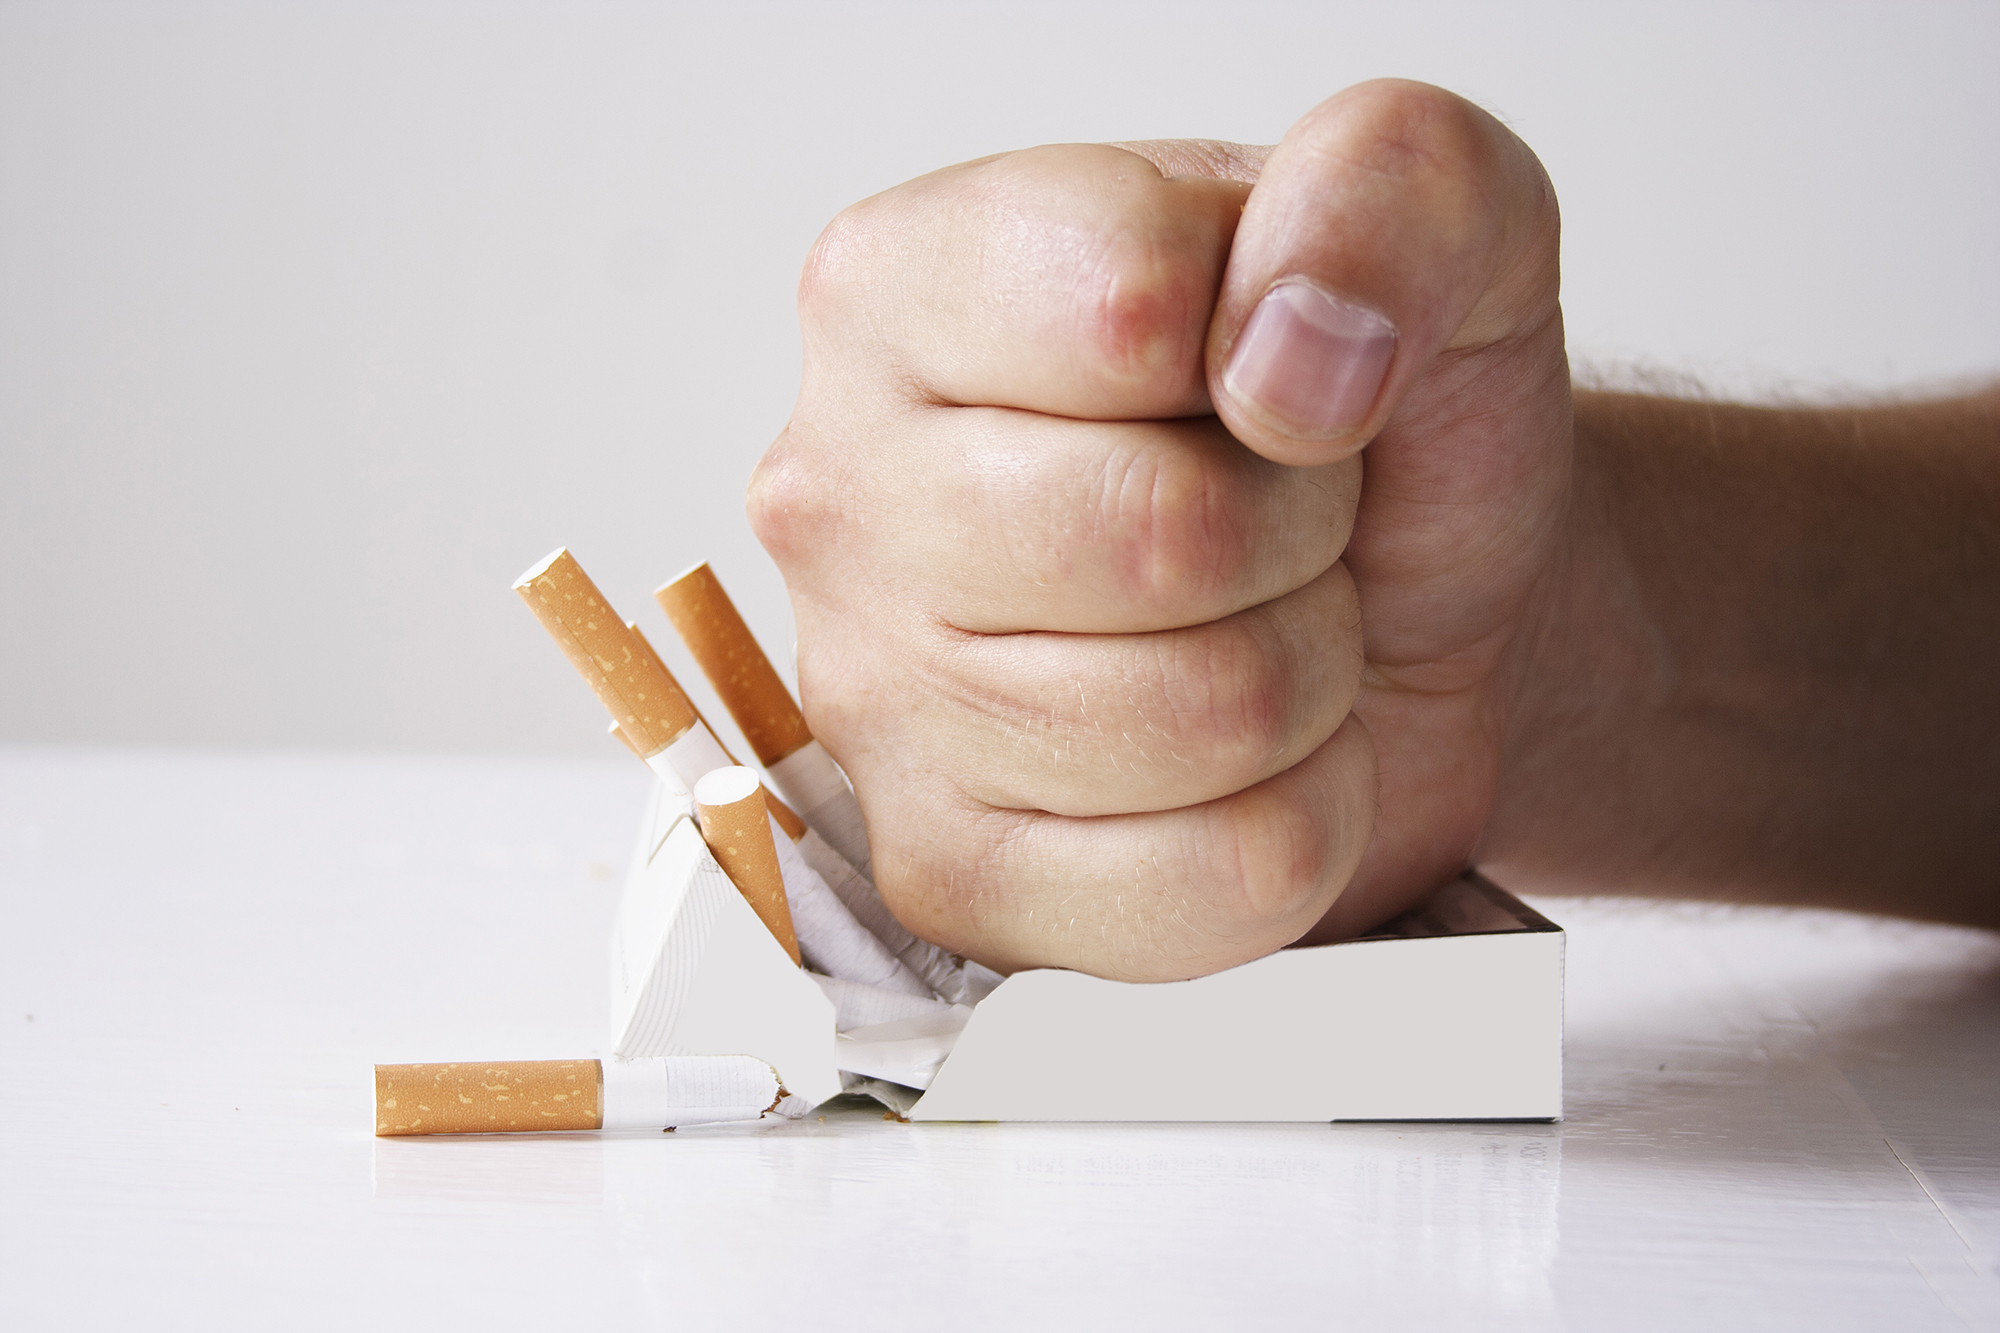 Hand crushing cigarettes over white background